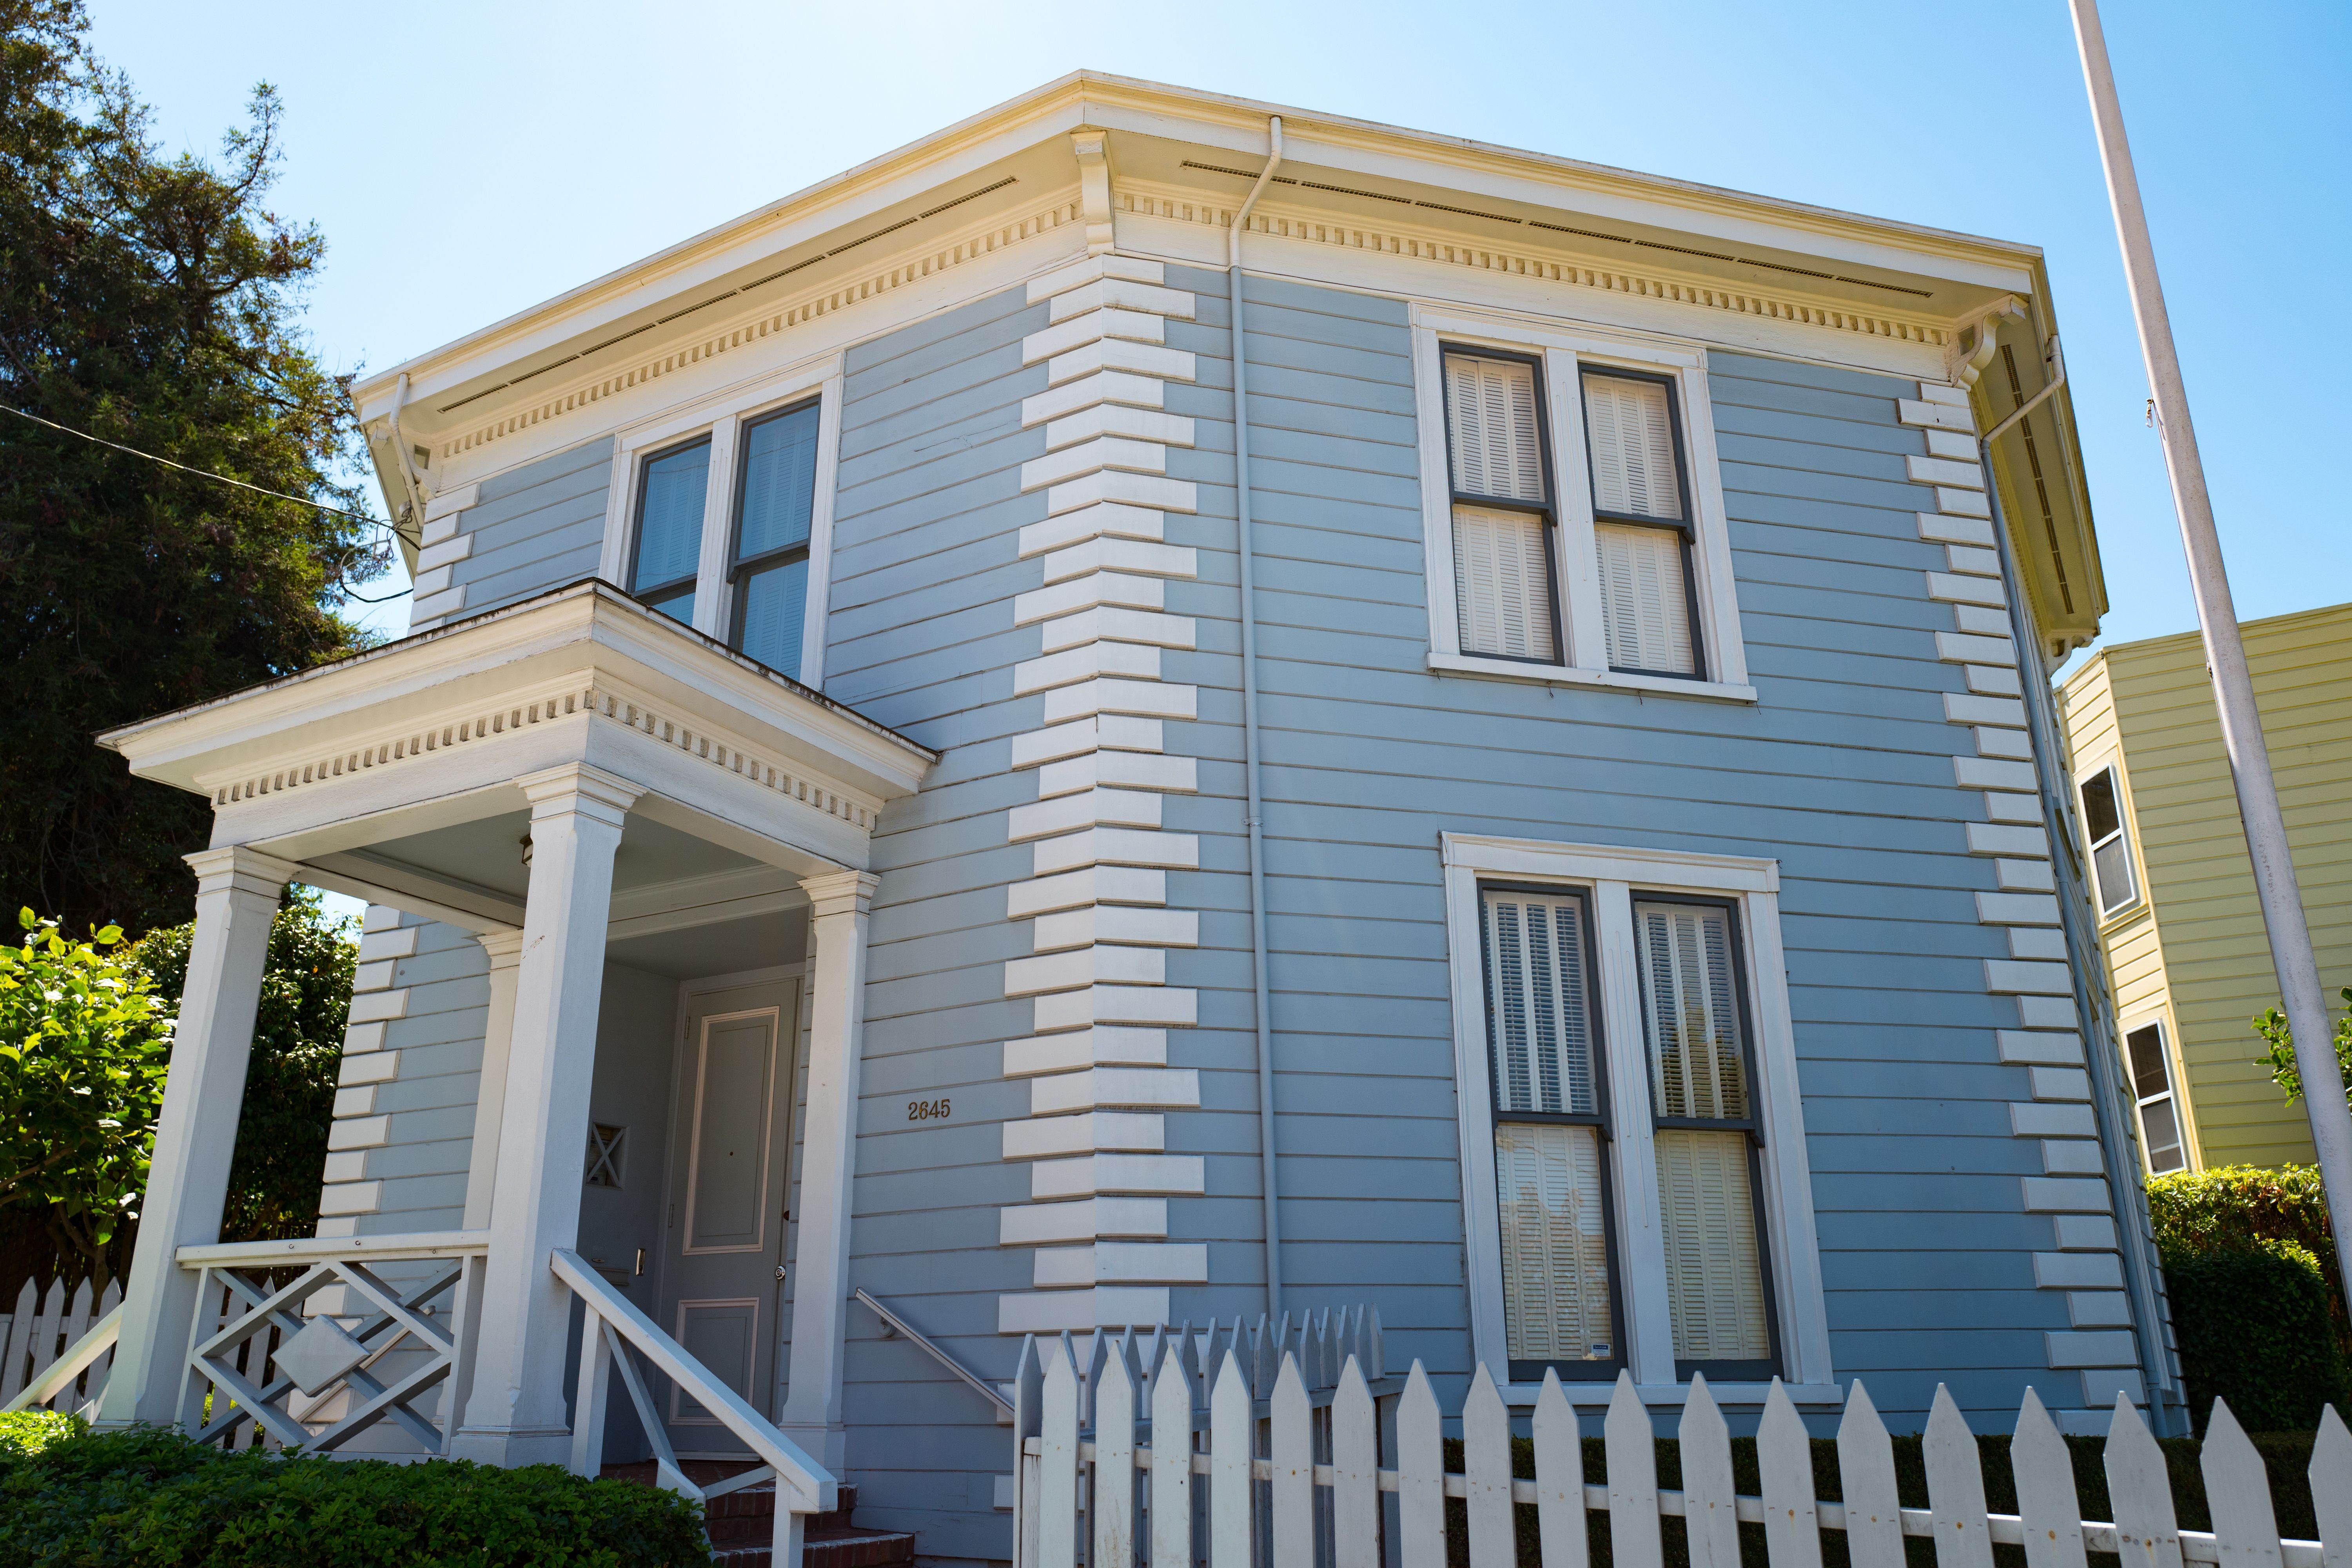 Victorian Style Houses in 19th Century America